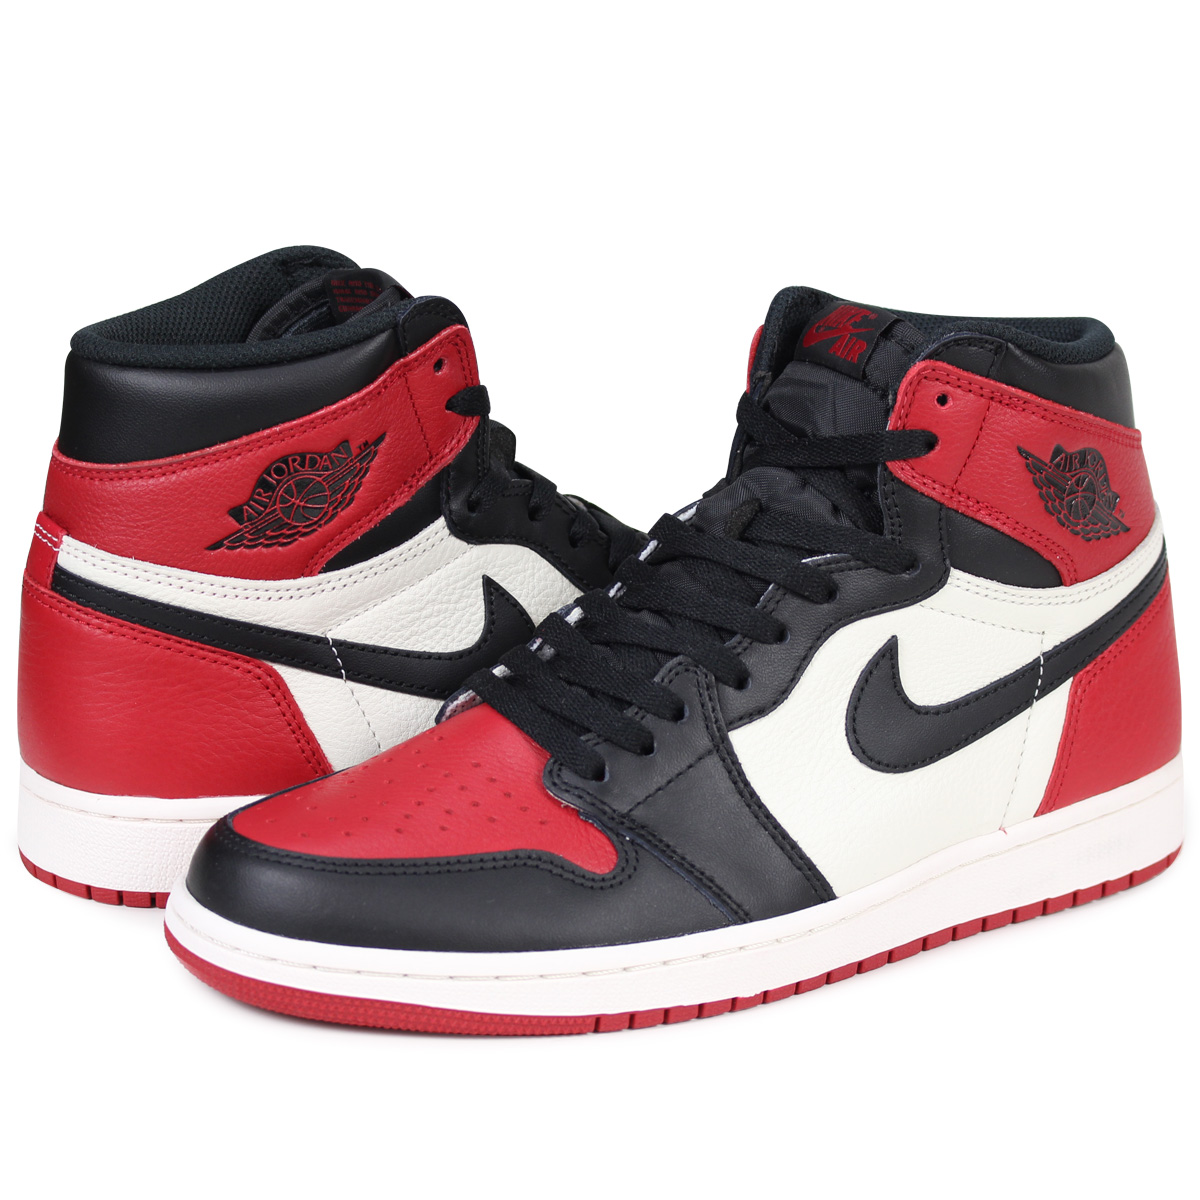 bc31a952c32b71 NIKE AIR JORDAN 1 RETRO HIGH OG BRED TOE Nike Air Jordan 1 nostalgic high  sneakers men 555